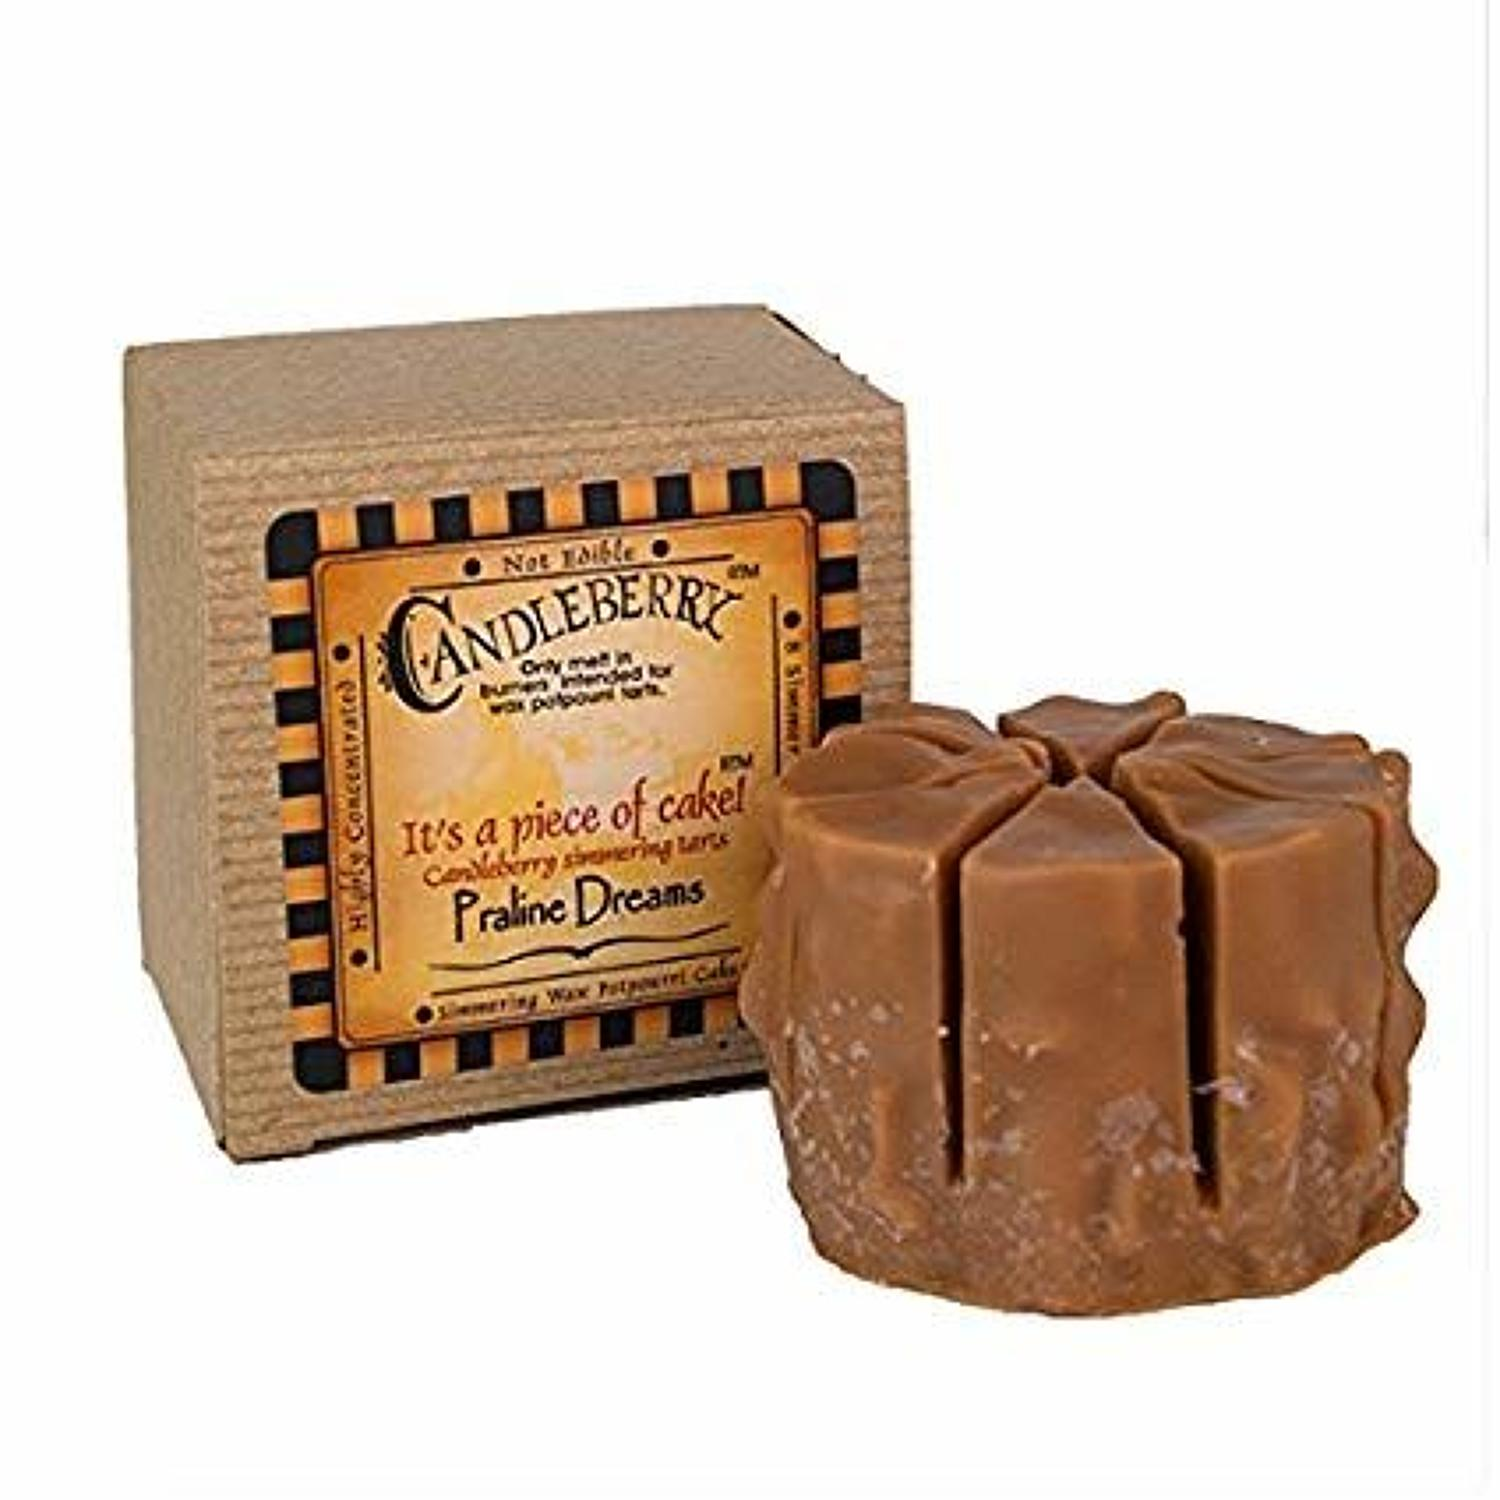 Candleberry Praline Dreams cake wax melt